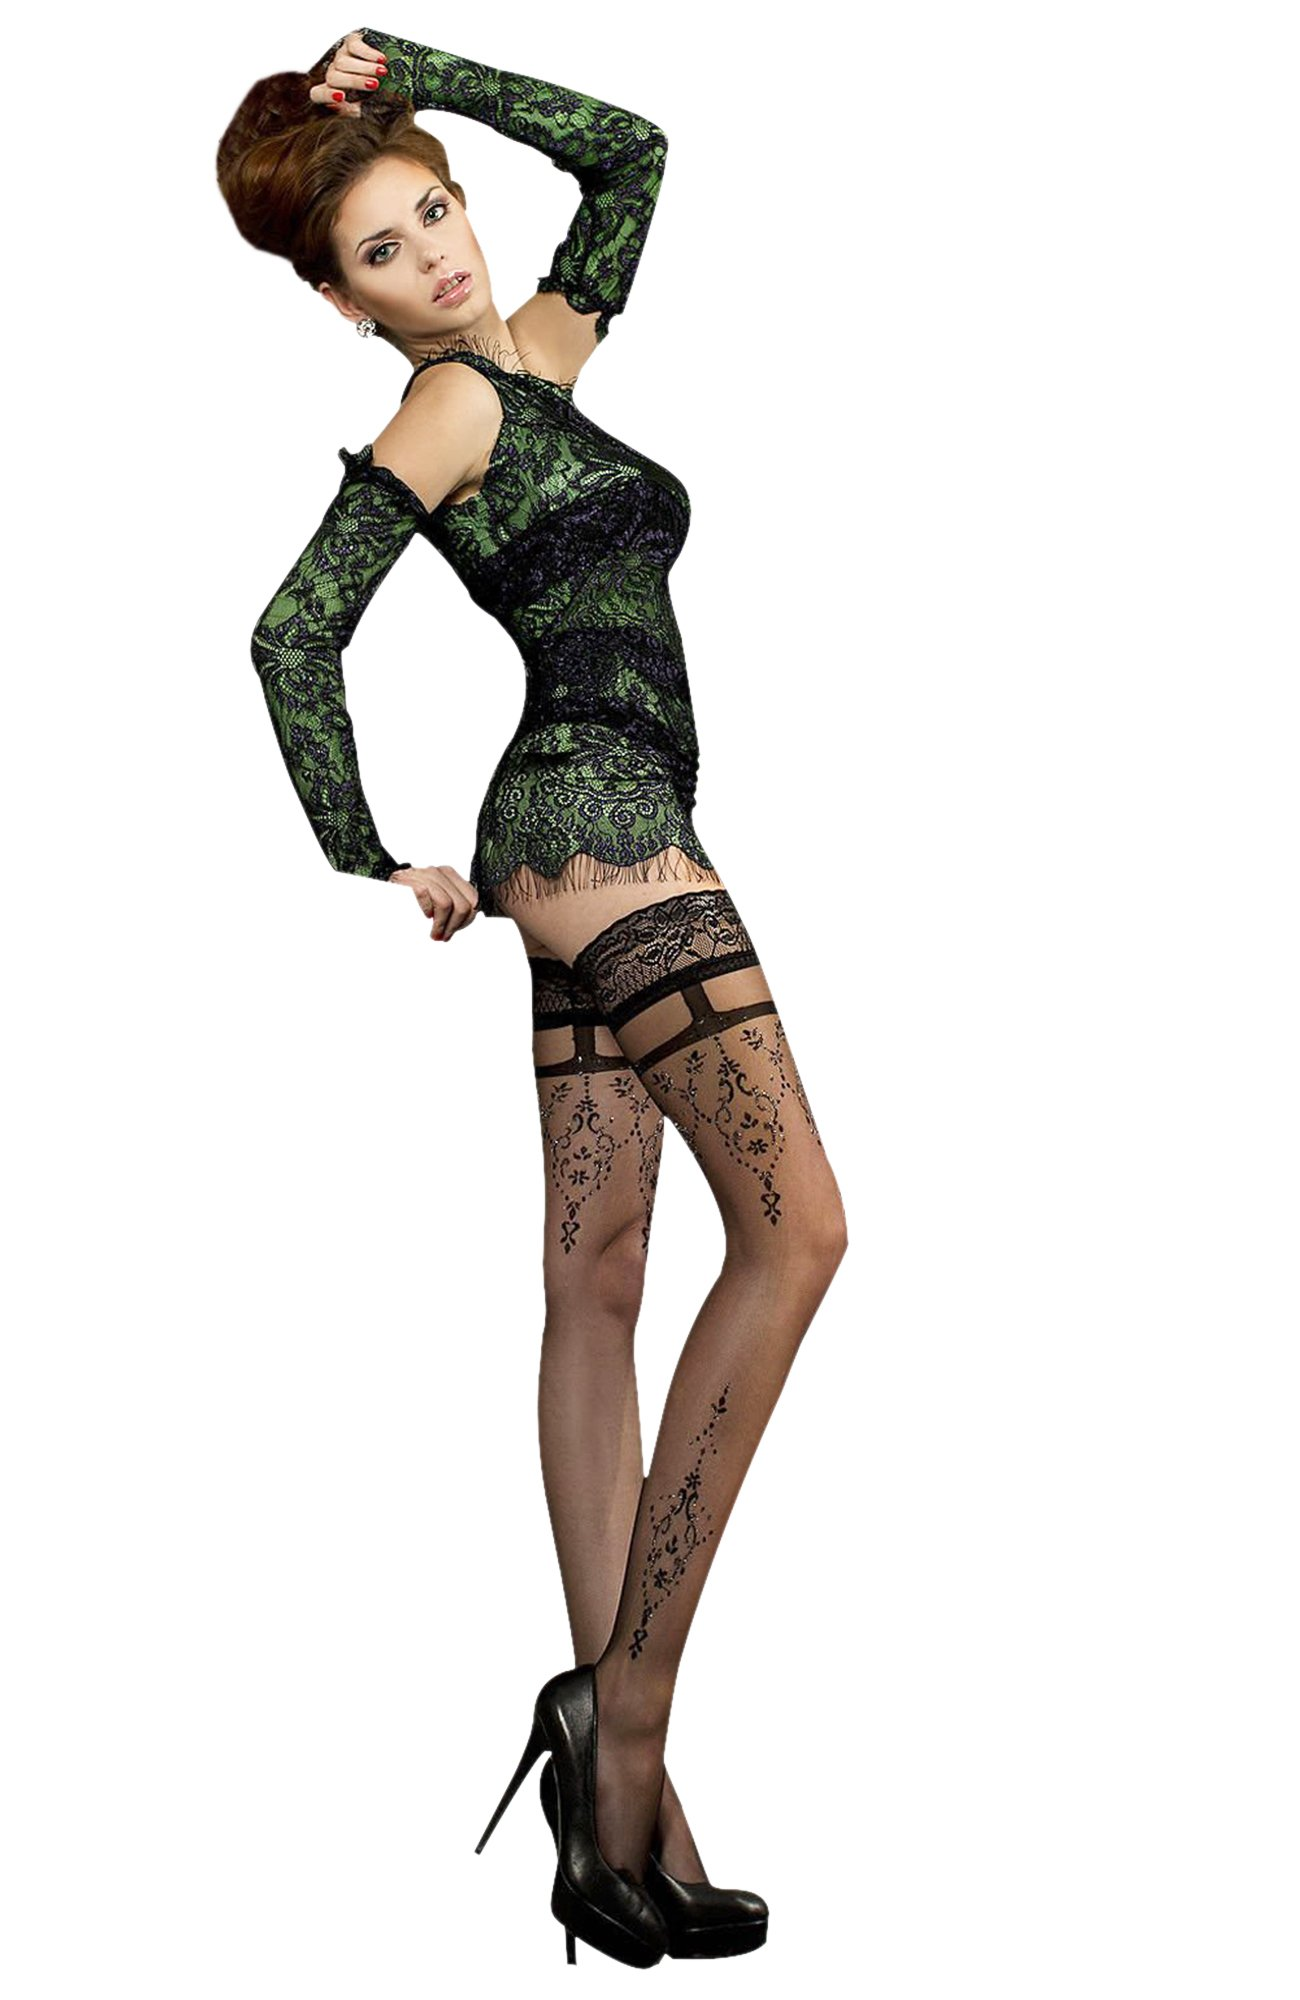 Studio Collants 212 Thigh Highs (S/M)